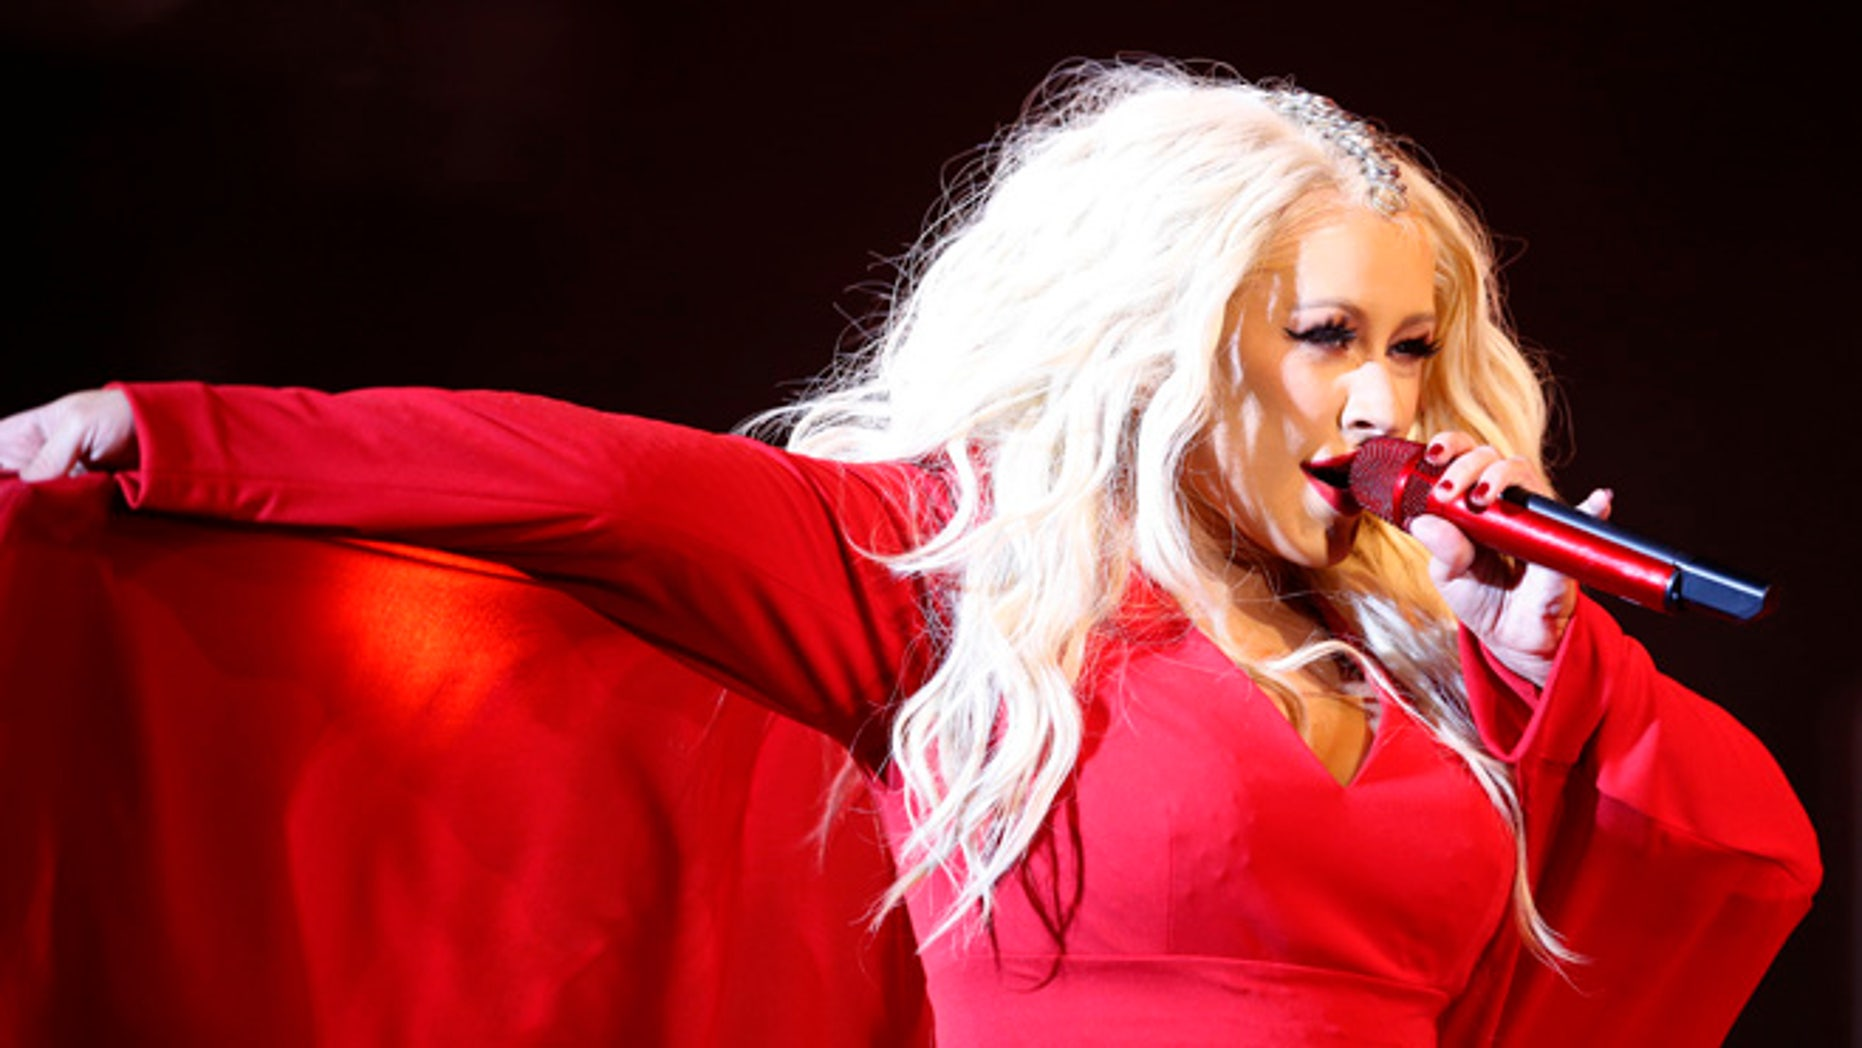 FILE - In this May 28, 2016 file photo, Christina Aguilera performs during a concert at the annual Mawazine Music Festival in Rabat, Morocco. Aguilera, Stevie Wonder, and members of Prince's inner circle will highlight a family-sanctioned Prince tribute concert in St. Paul on Oct. 13, 2016. The lineup also includes Chaka Khan, John Mayer, Tori Kelly, Anita Baker, Doug E. Fresh, Luke James, Bilal and Mint Condition. (AP Photo /Abdeljalil Bounhar, File)